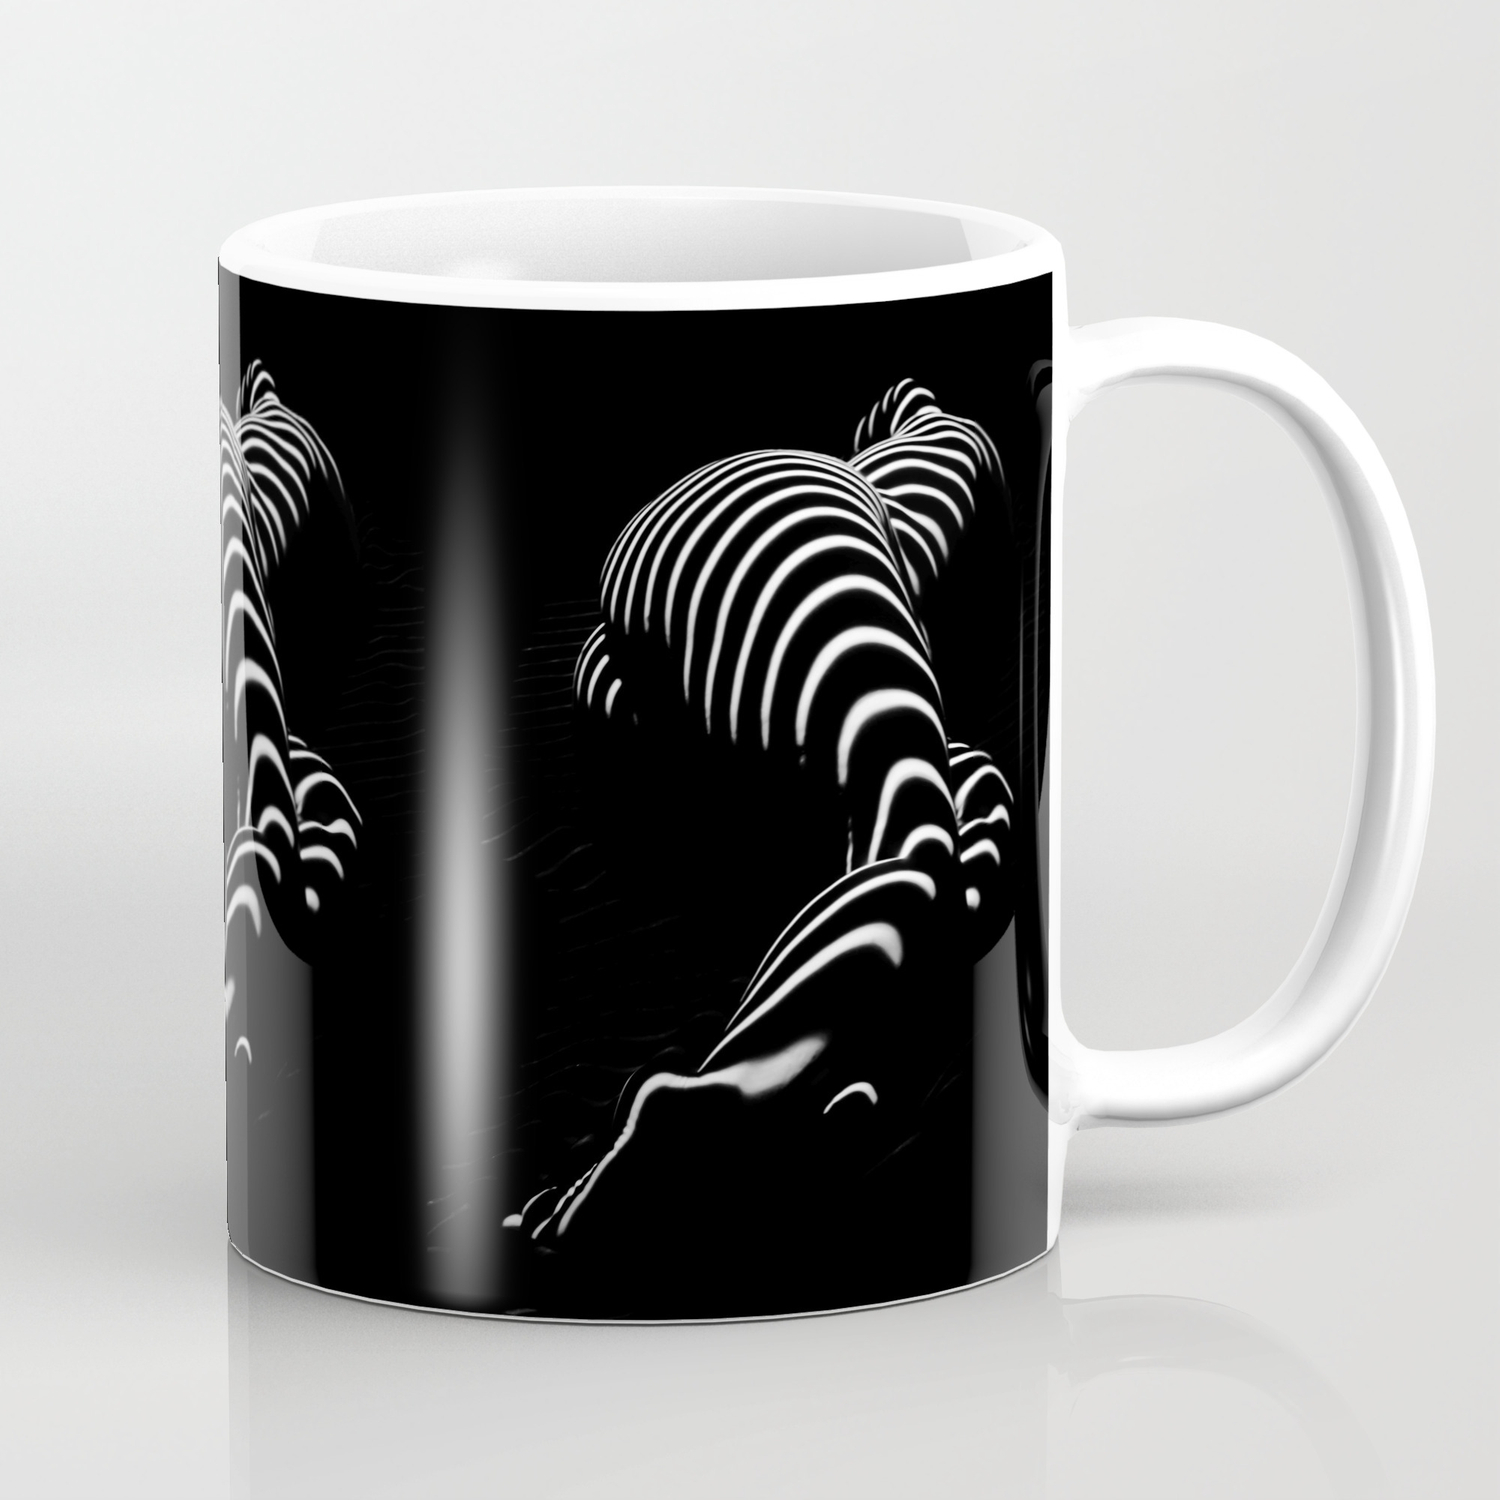 0774 ar bbw sensual legs hips and ass of a large woman big beautiful art nude black and white coffee mug